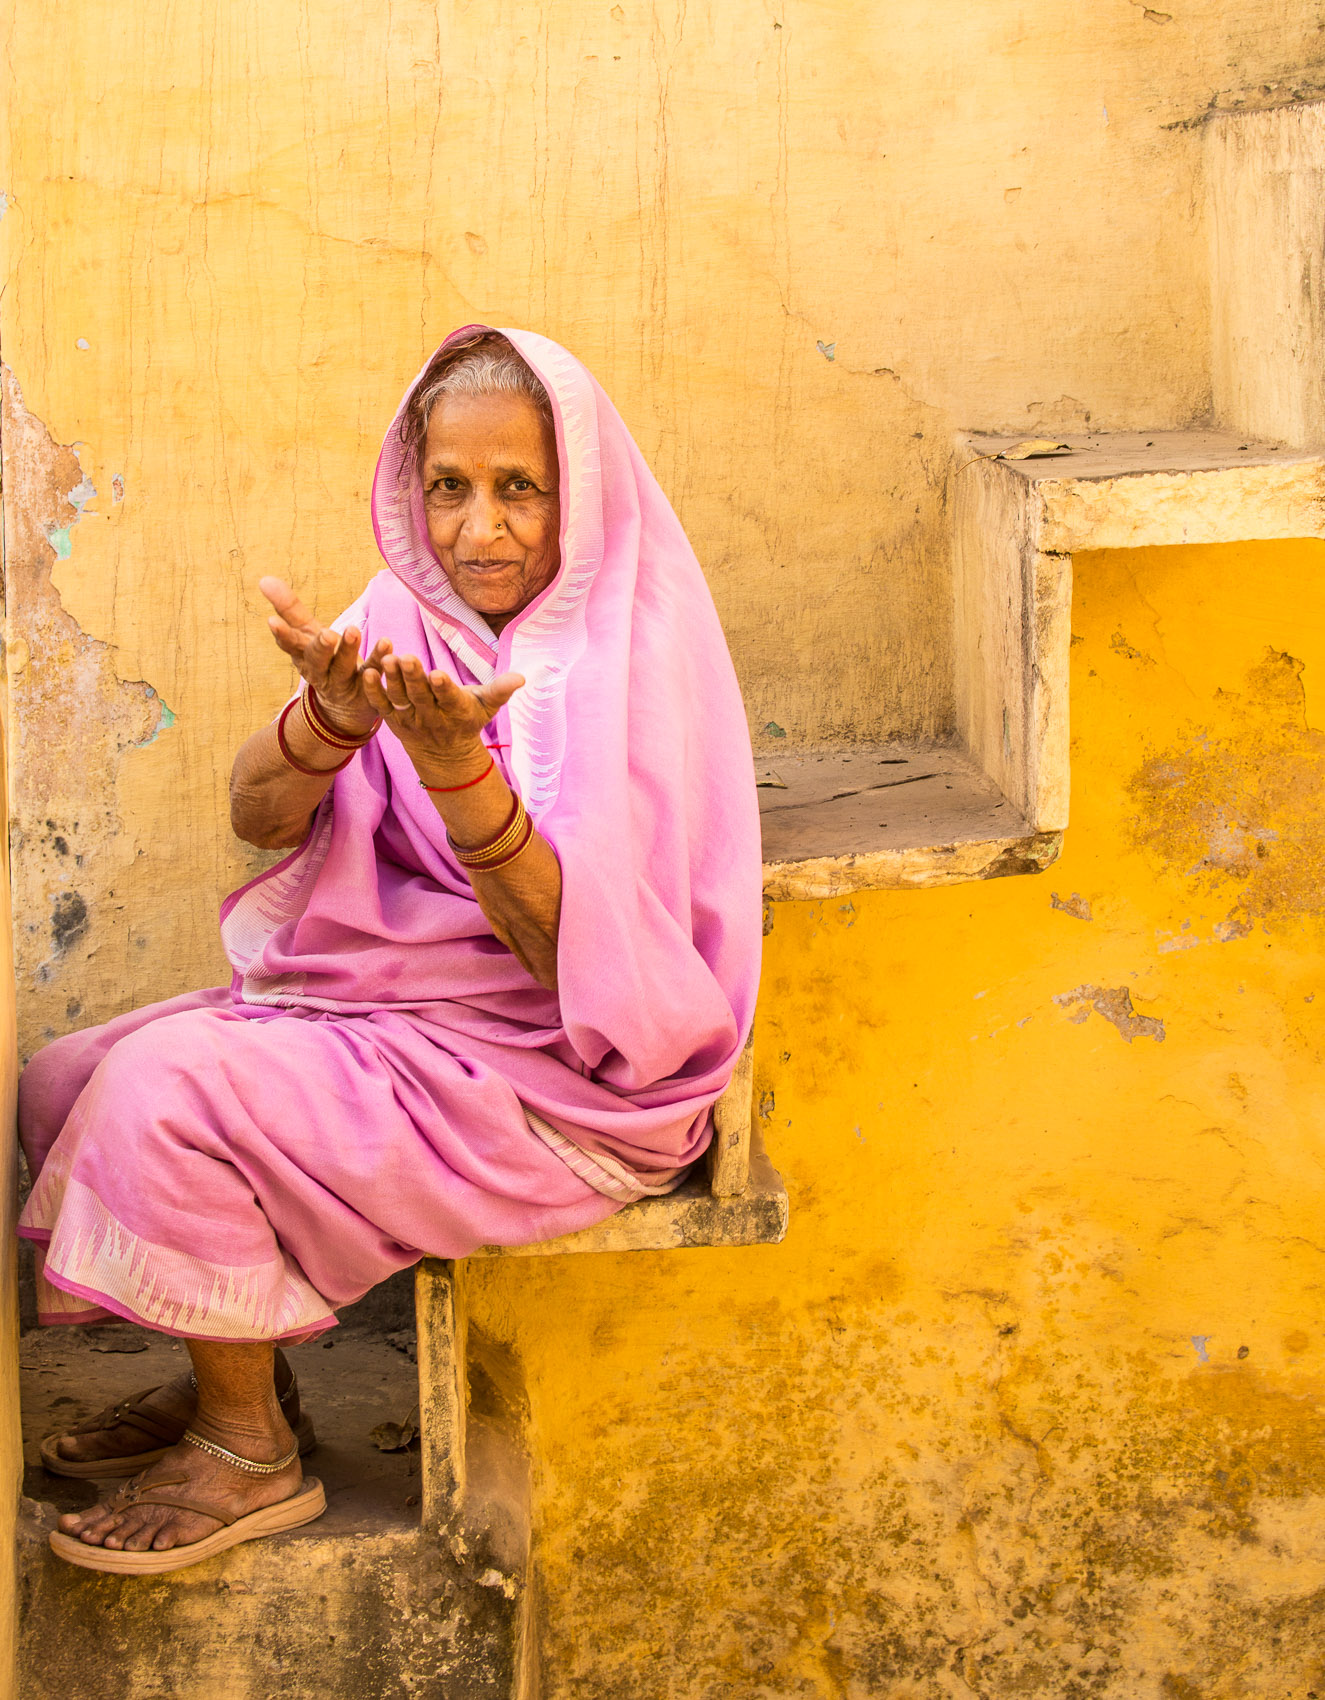 India-Bundi-PinkSari-Yellow-Wall